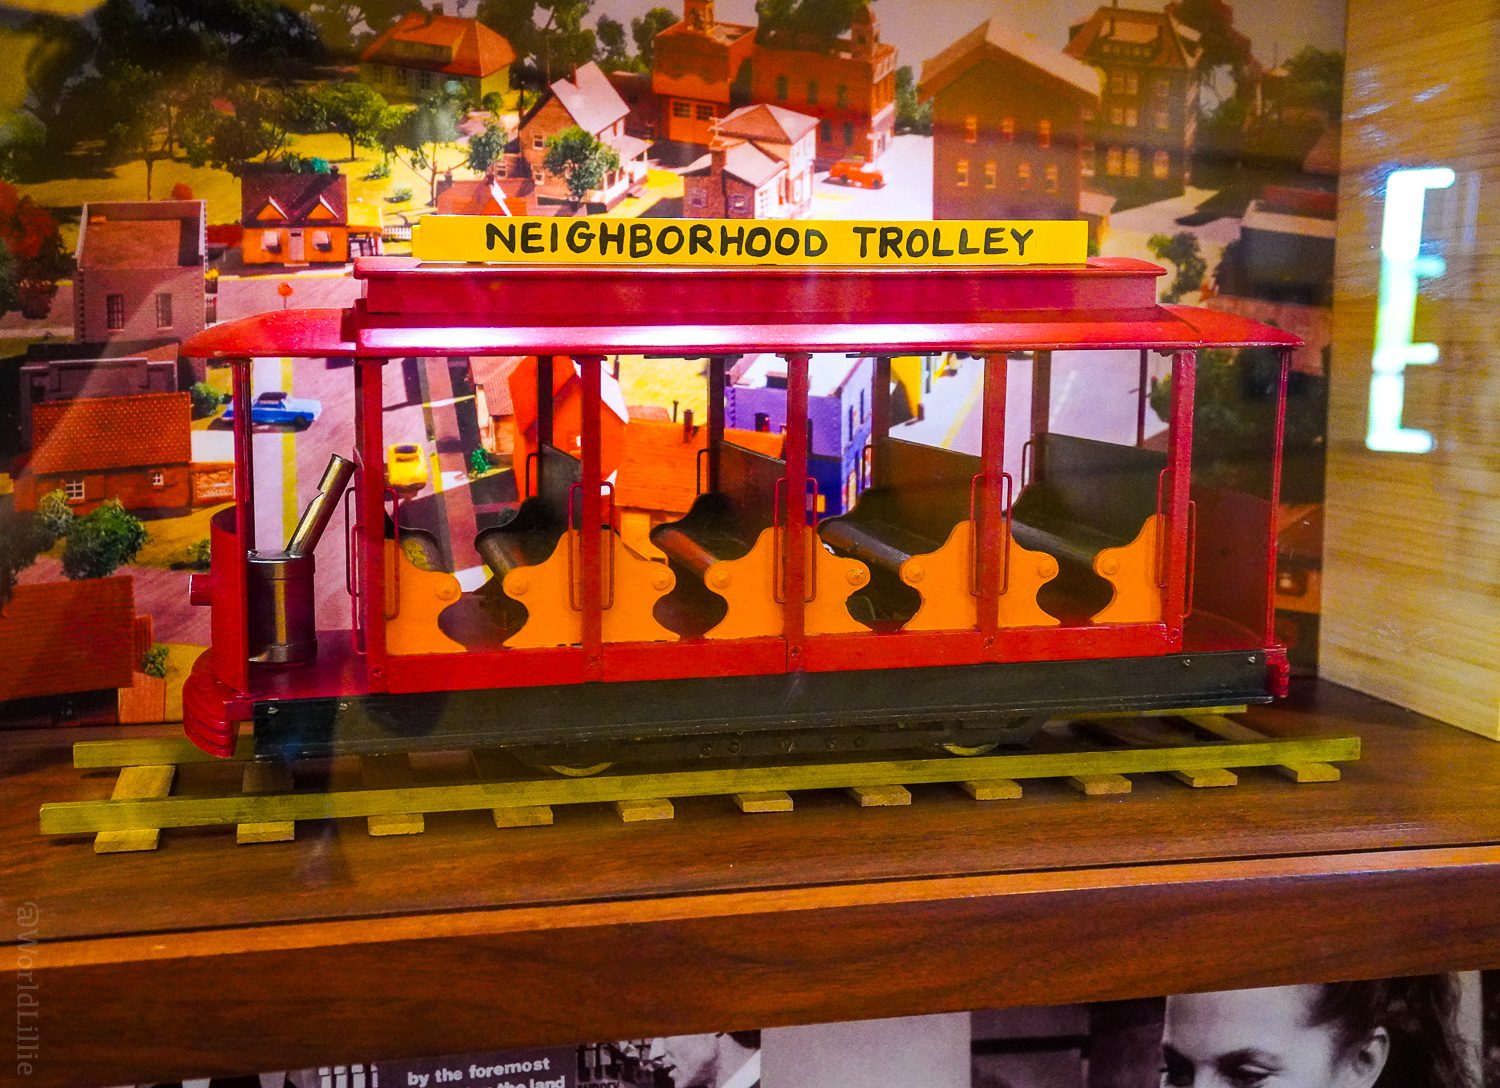 A close-up of the Neighborhood Trolley.